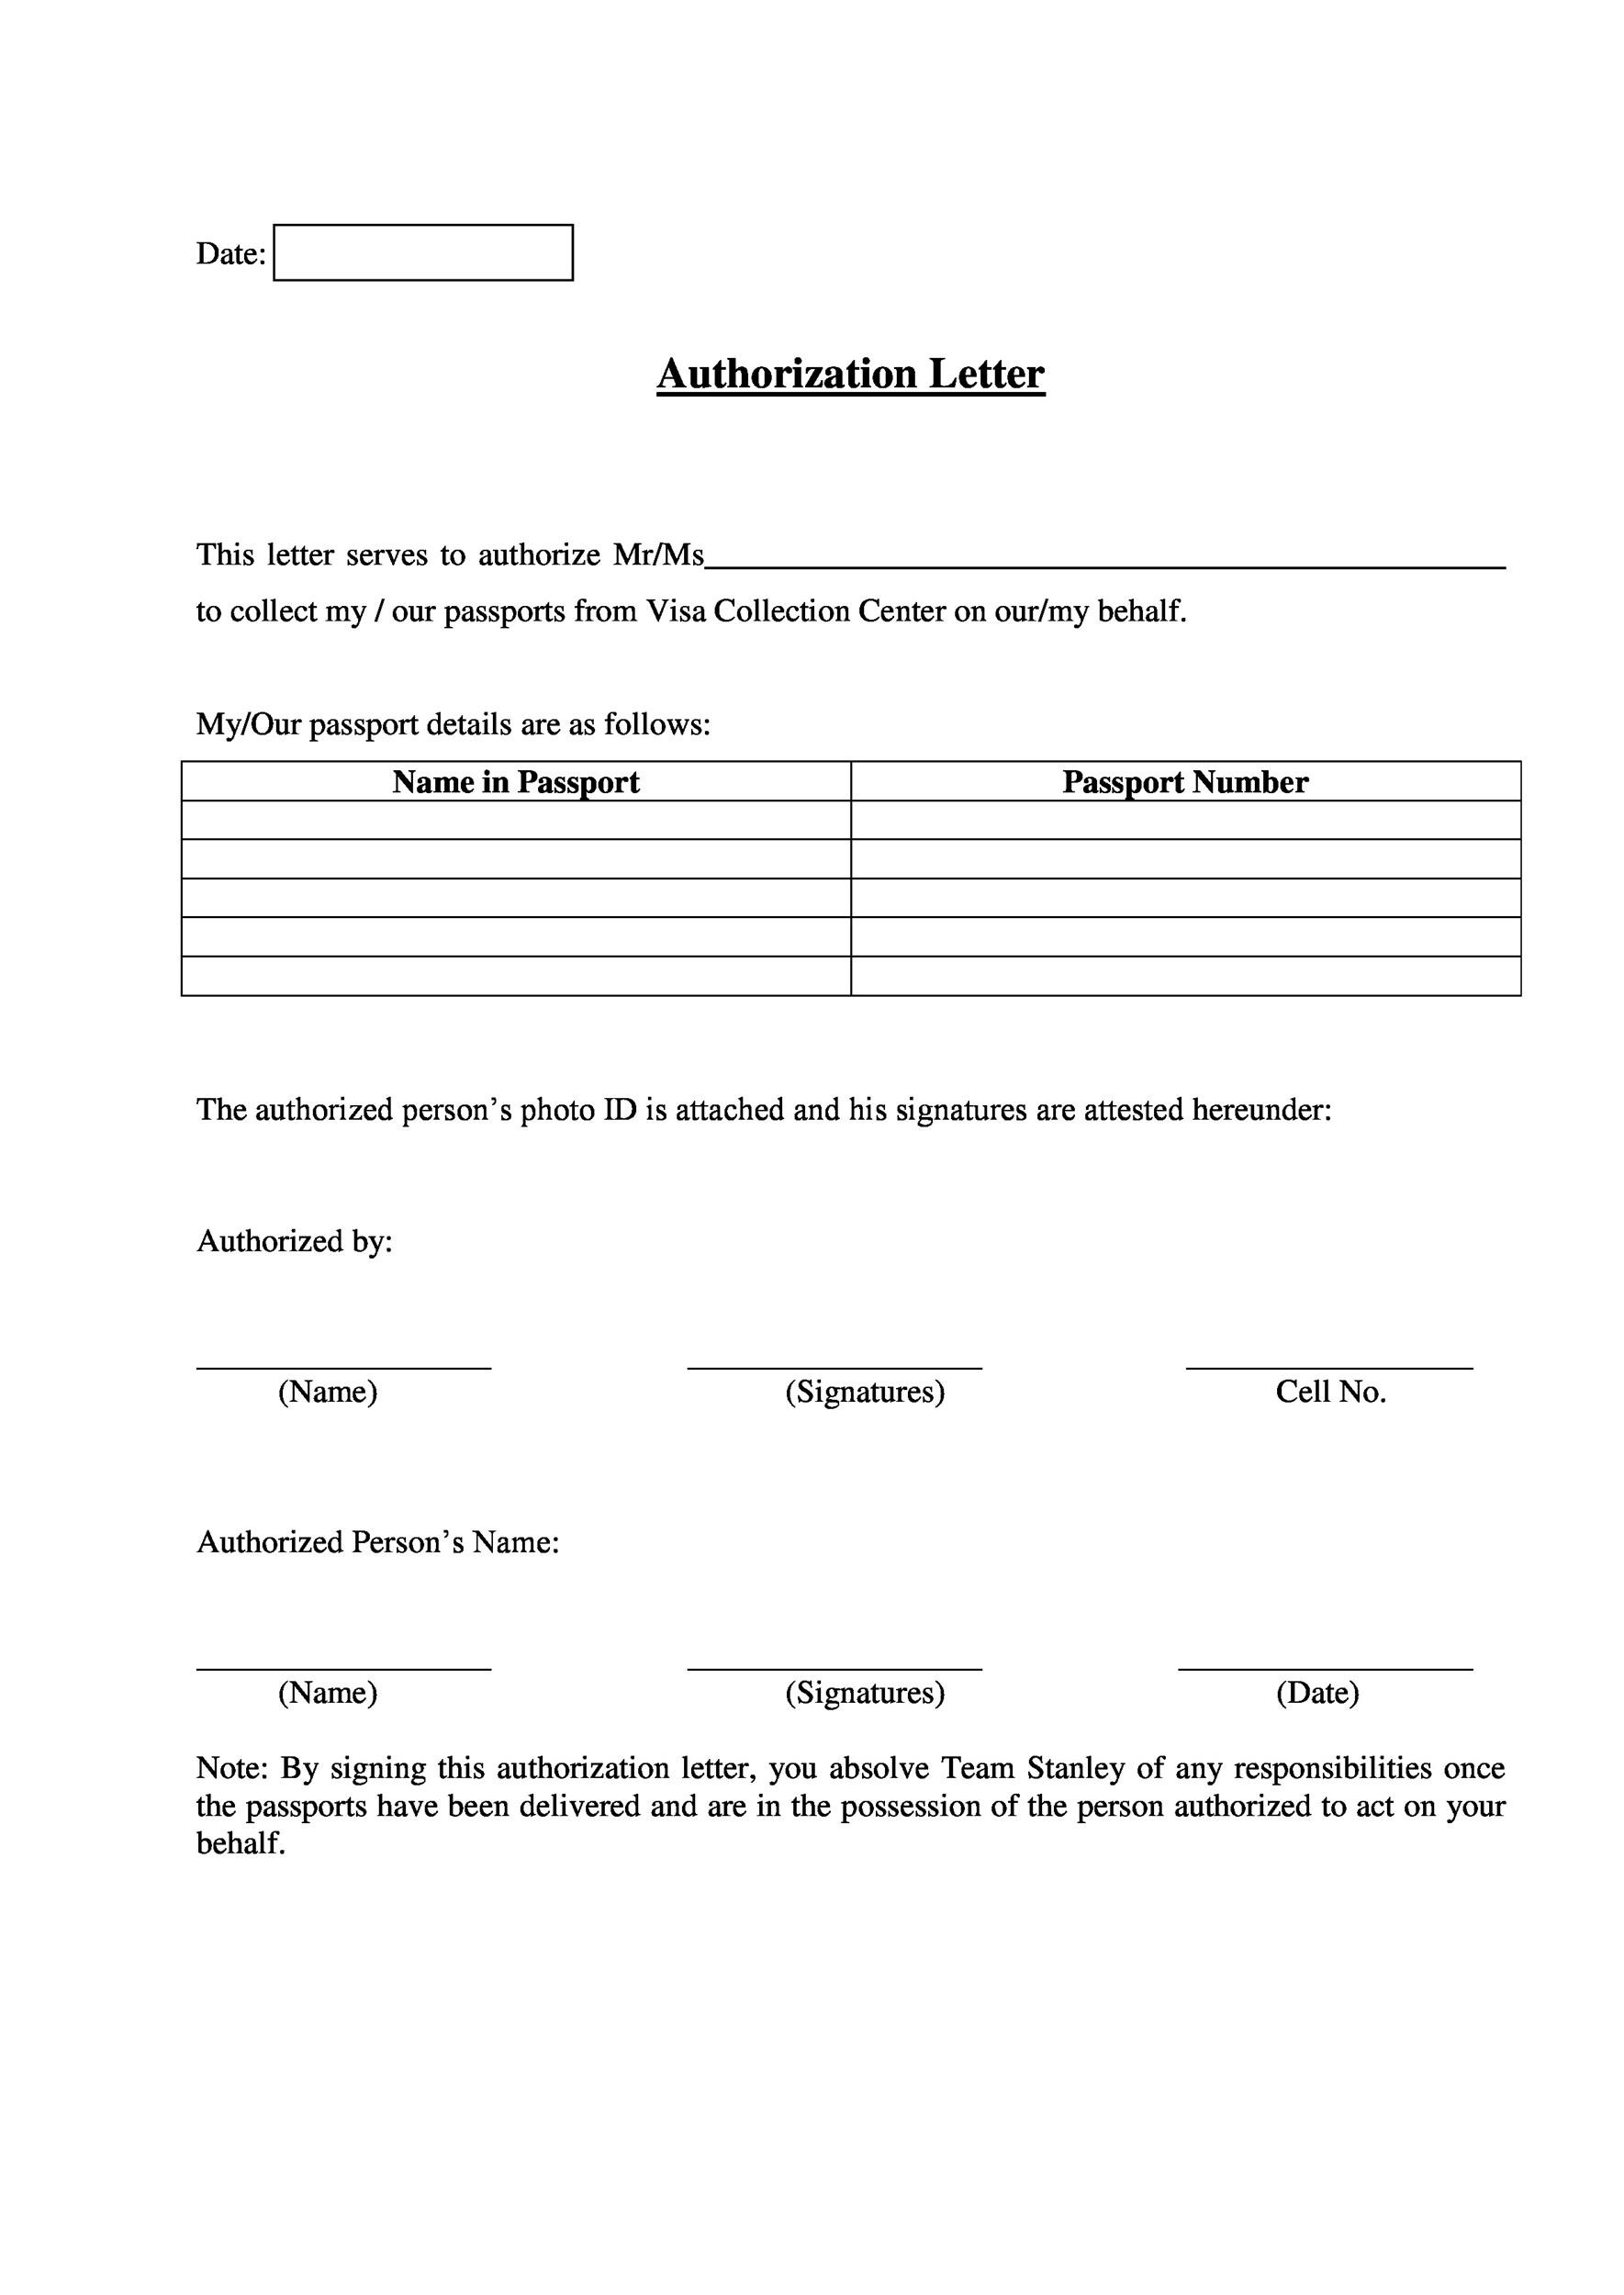 46 Authorization Letter Samples  Templates - Template Lab - passport authorization letter